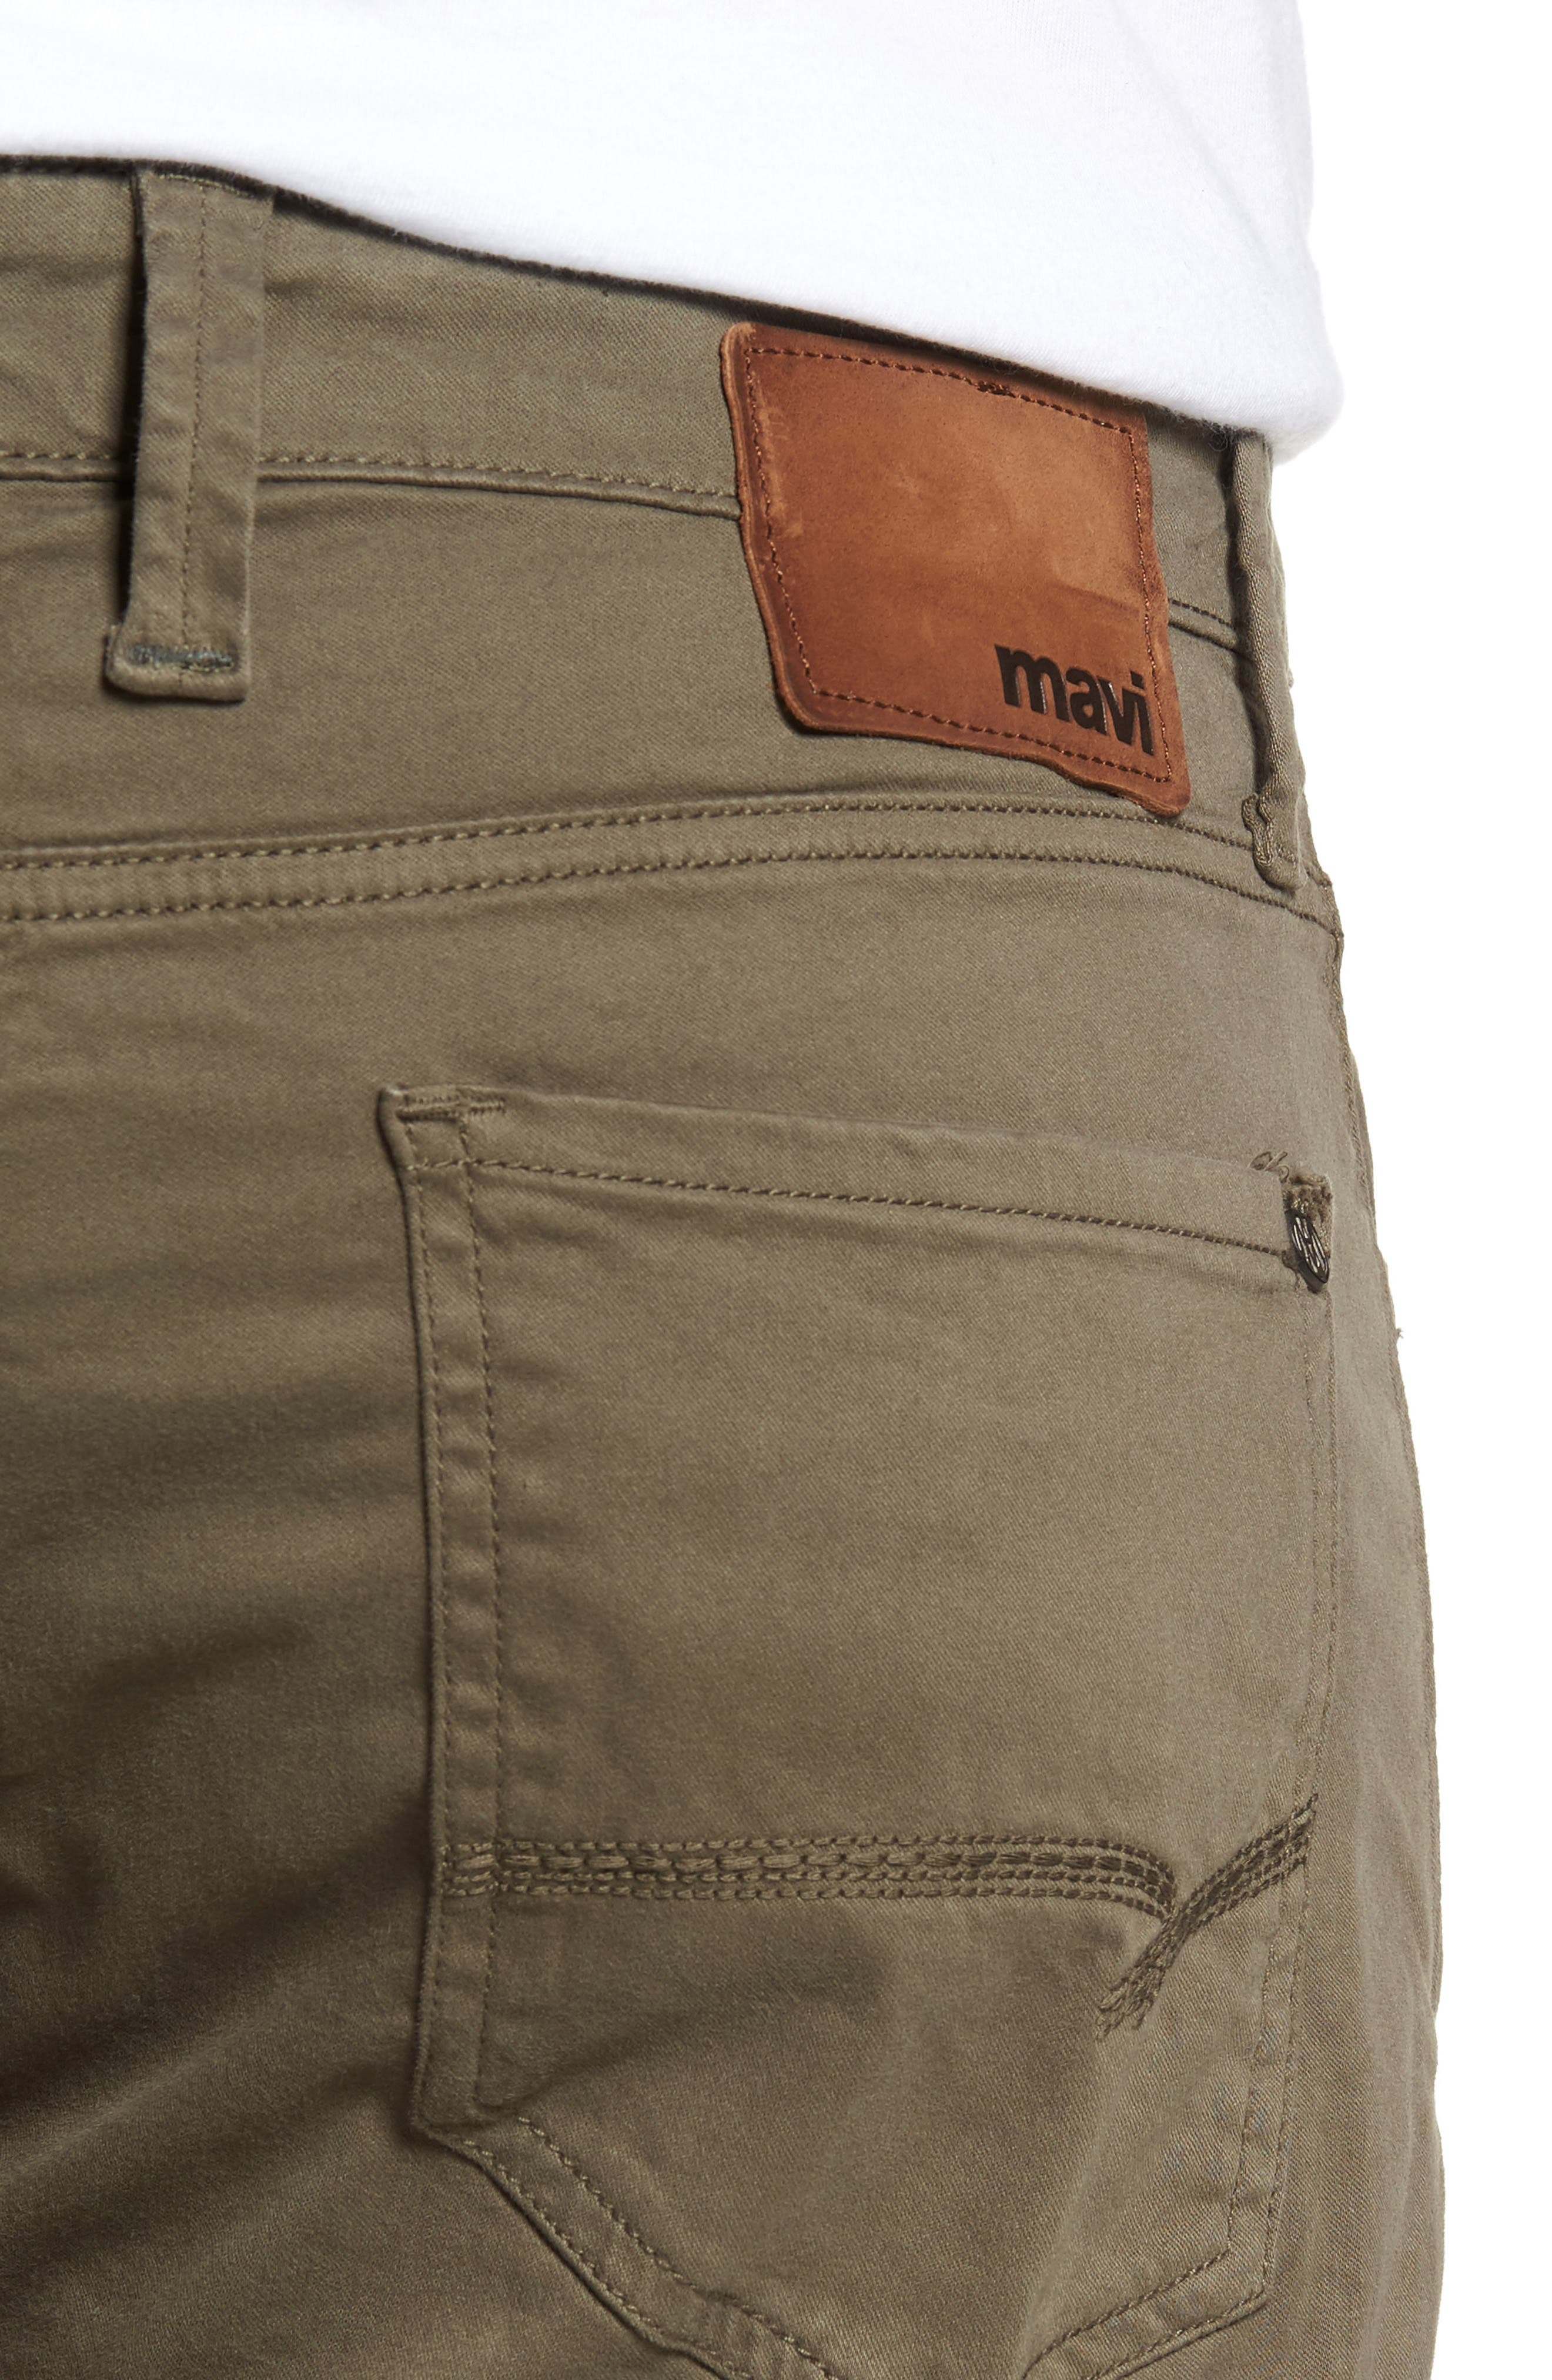 Zach Straight Fit Twill Pants,                             Alternate thumbnail 4, color,                             DUSTY OLIVE TWILL